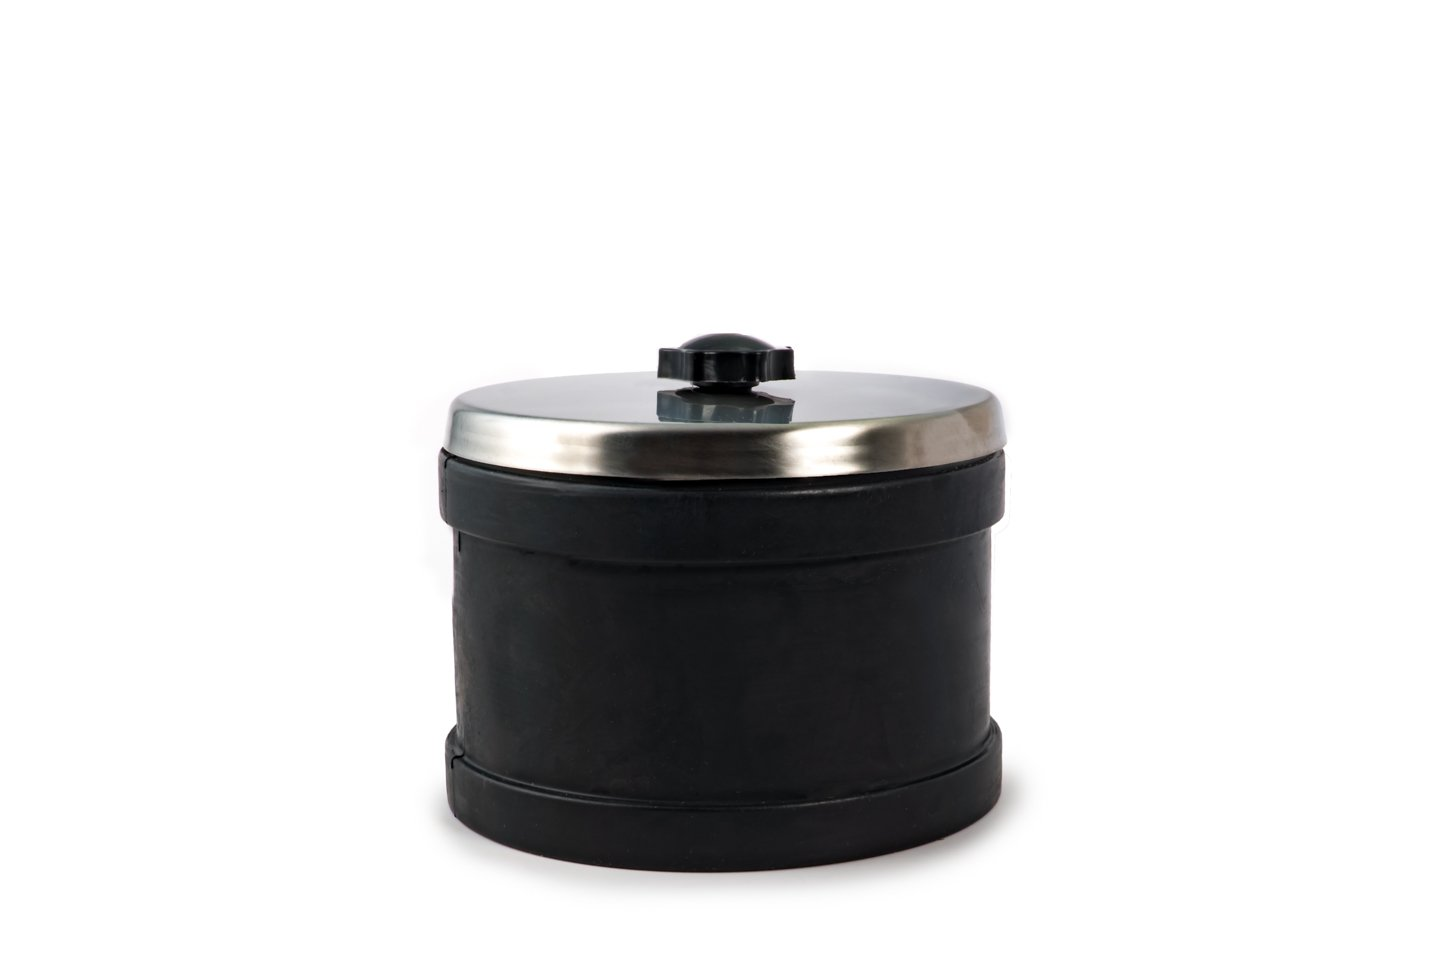 Discover with Dr. Cool Replacement Rock Tumbler Barrel for National Geographic Professional Series Tumbler and Hobby Series Tumblers, 2 Pound Rock Polisher Barrel with Leak-Proof Lid by Discover with Dr. Cool